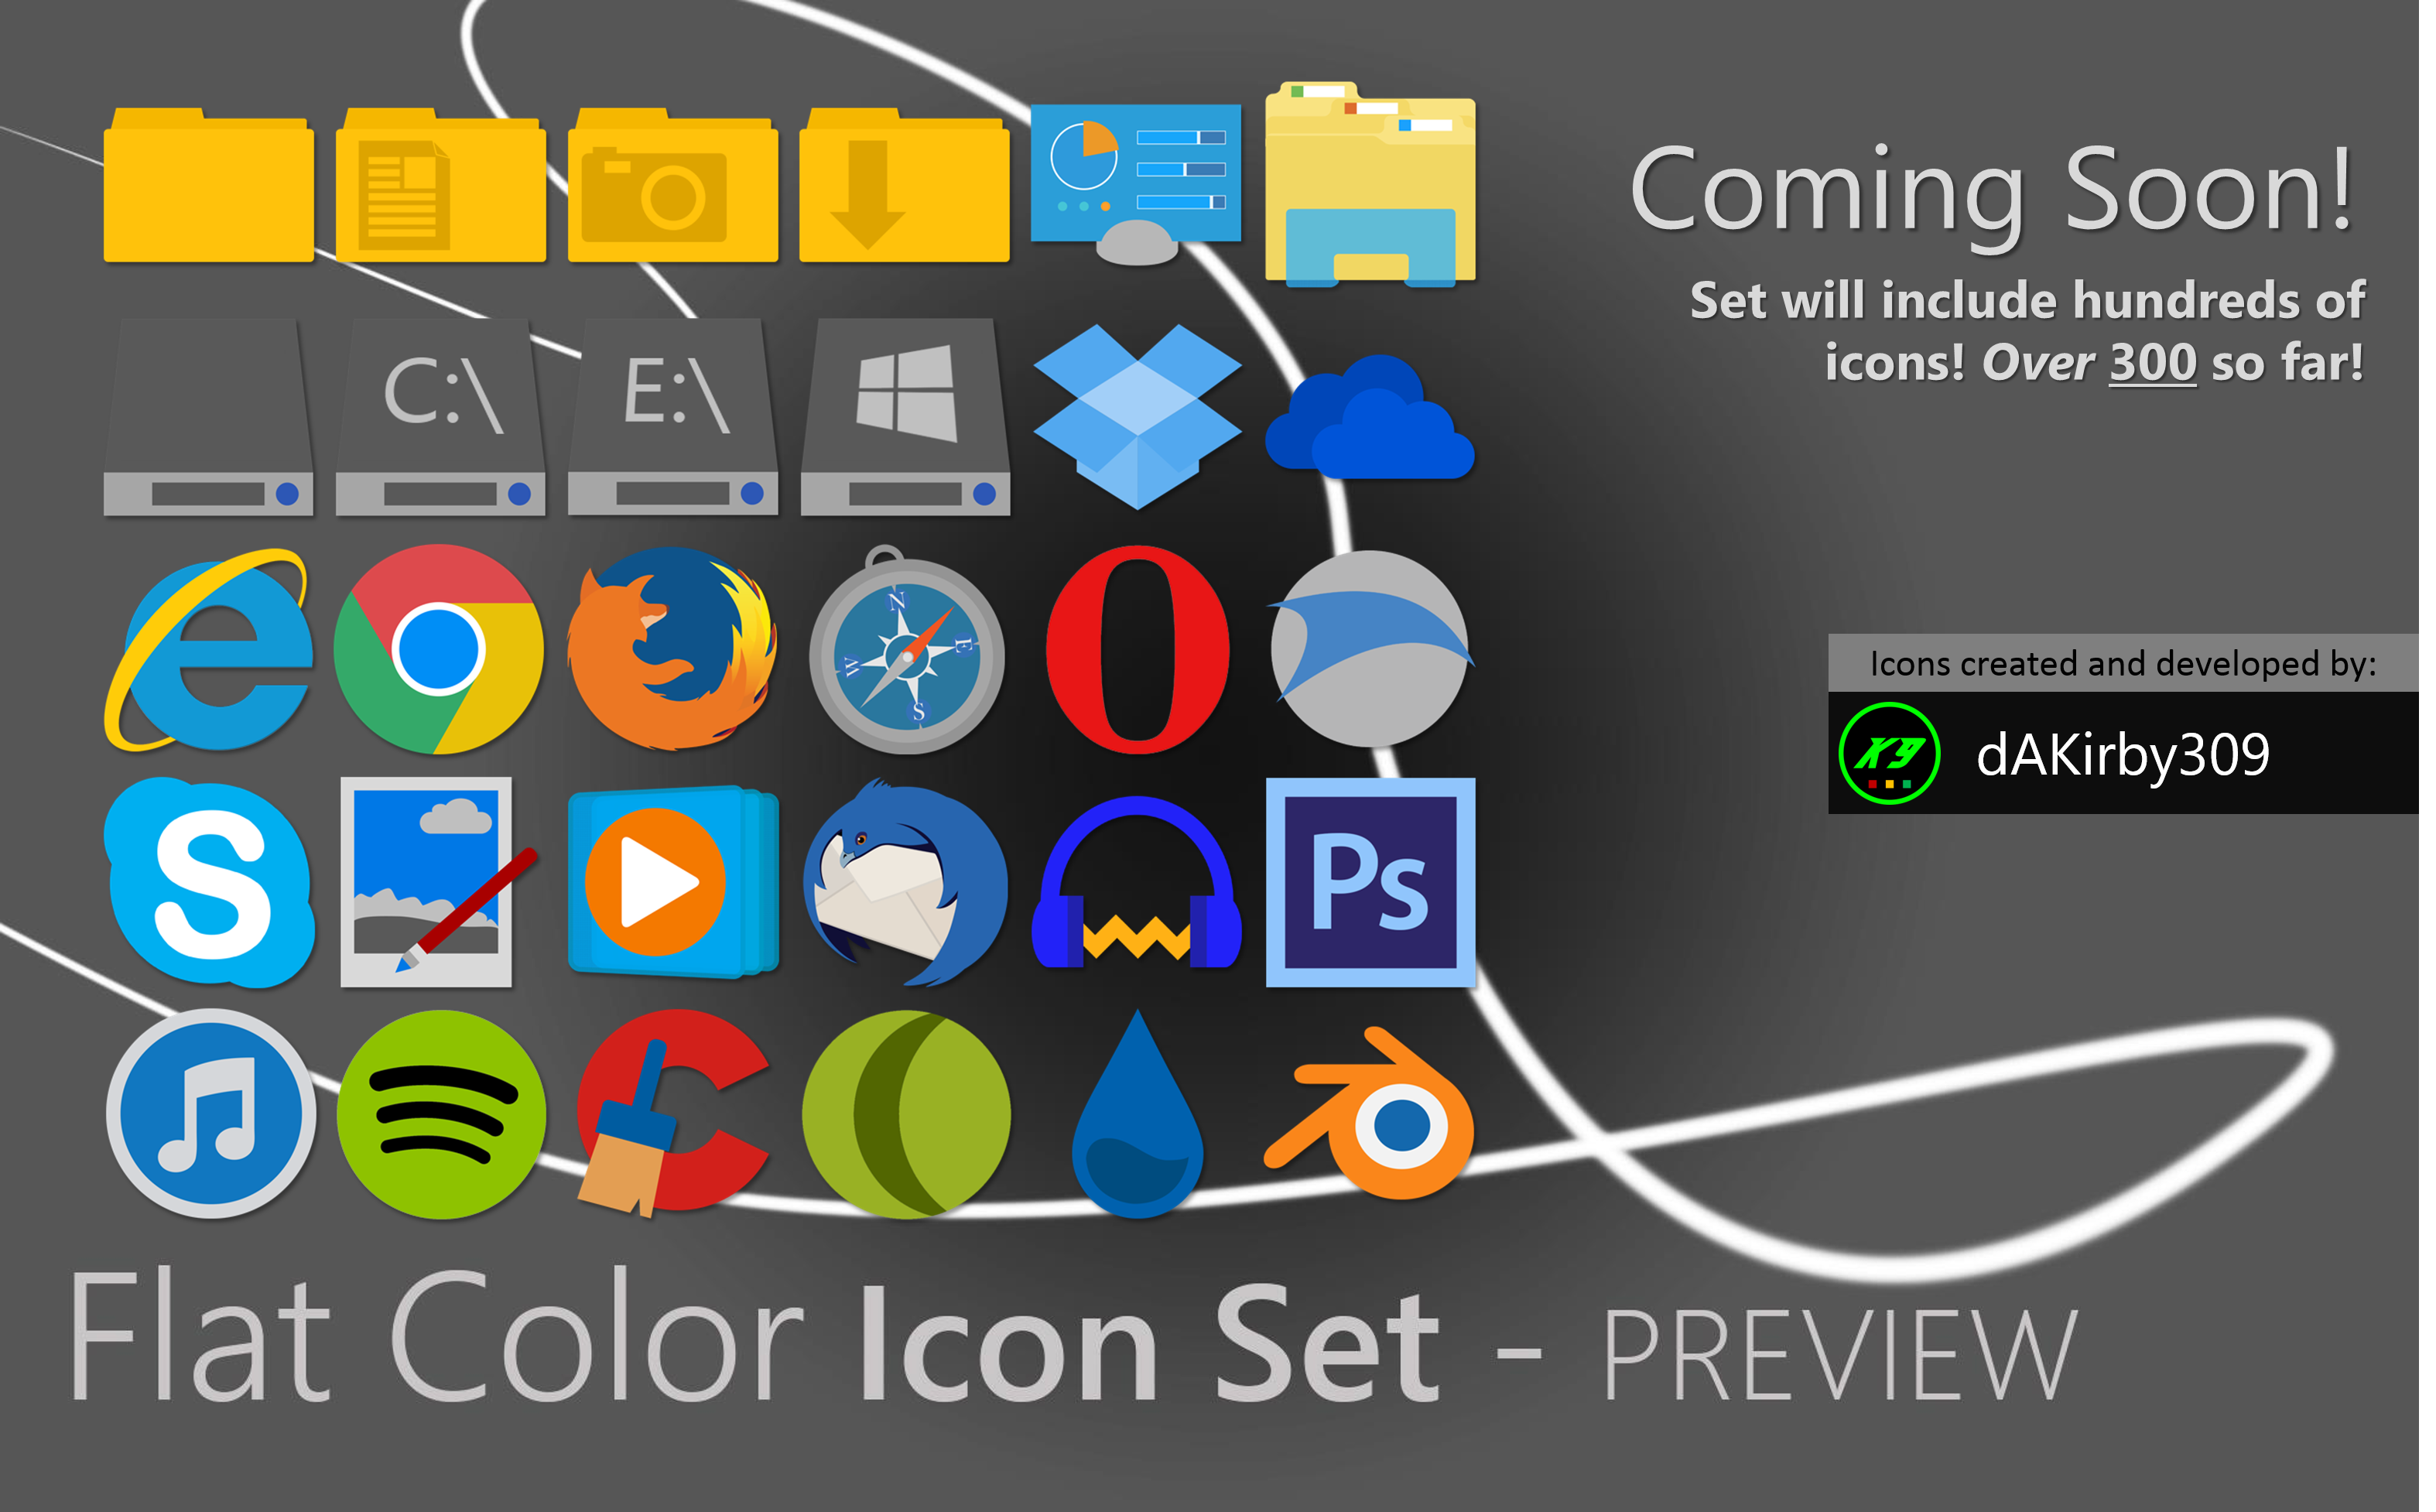 Flat Colors Icon Set - PREVIEW #1